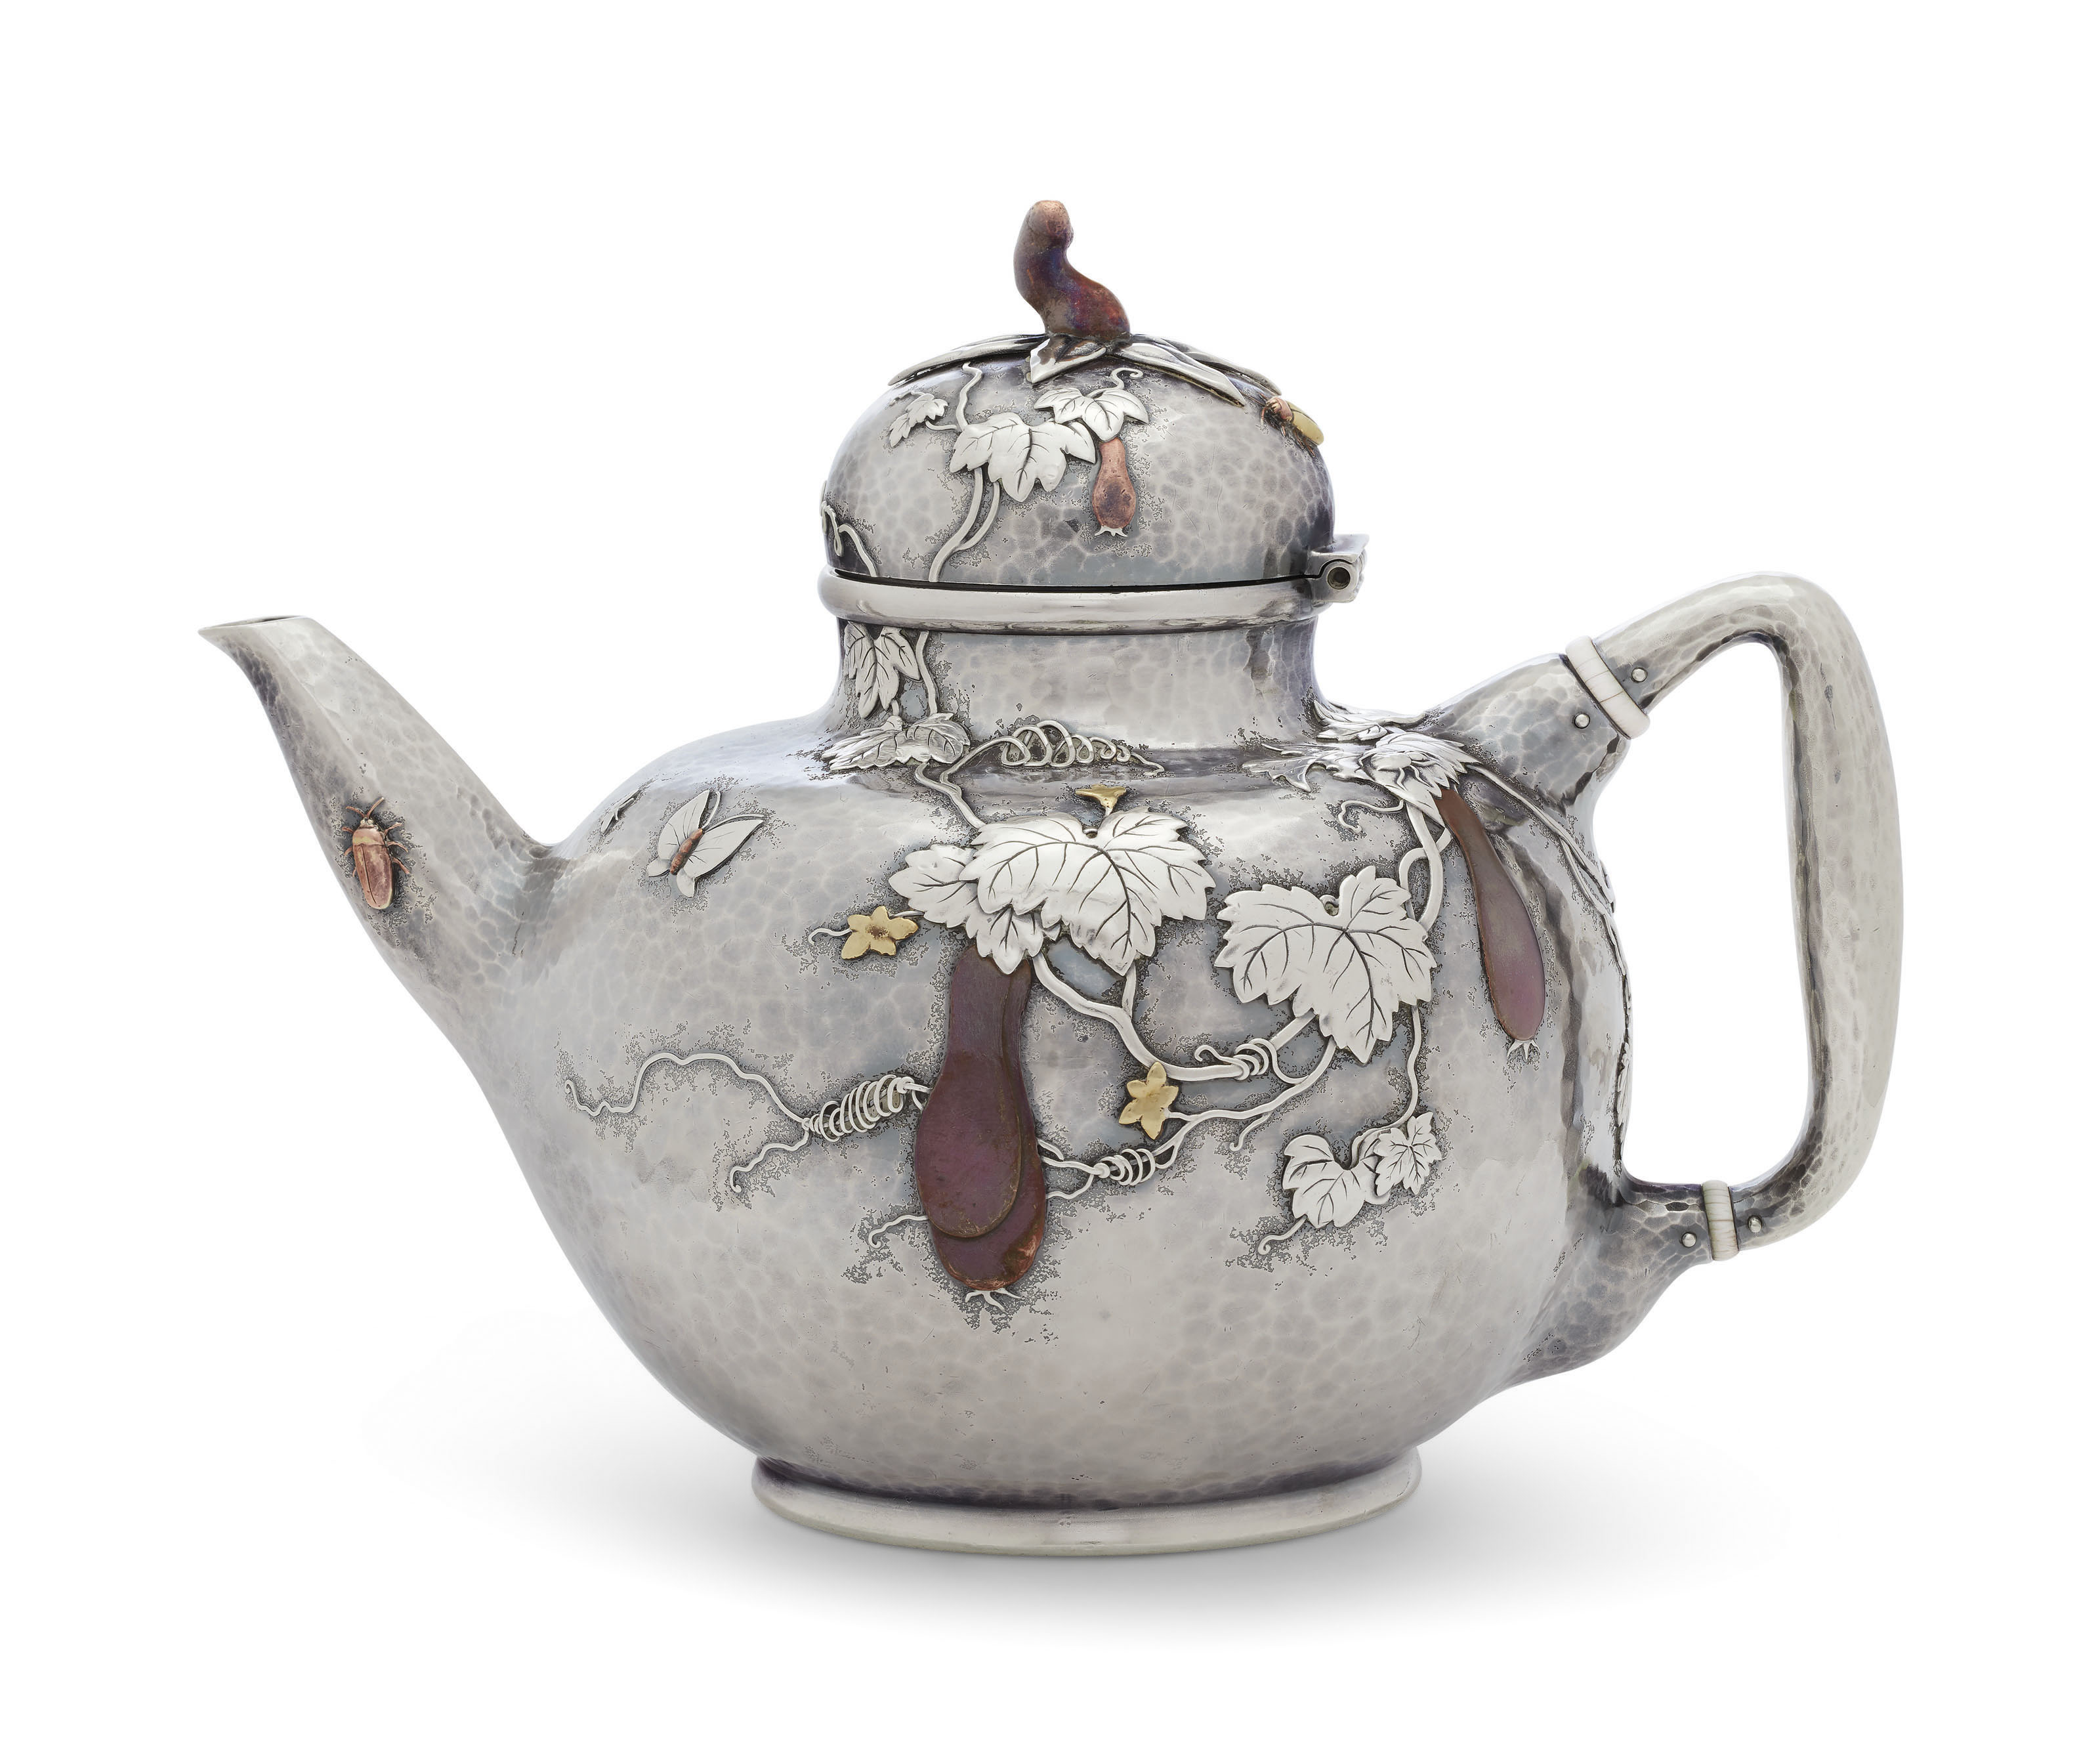 AN AMERICAN SILVER AND MIXED-METAL TEAPOT